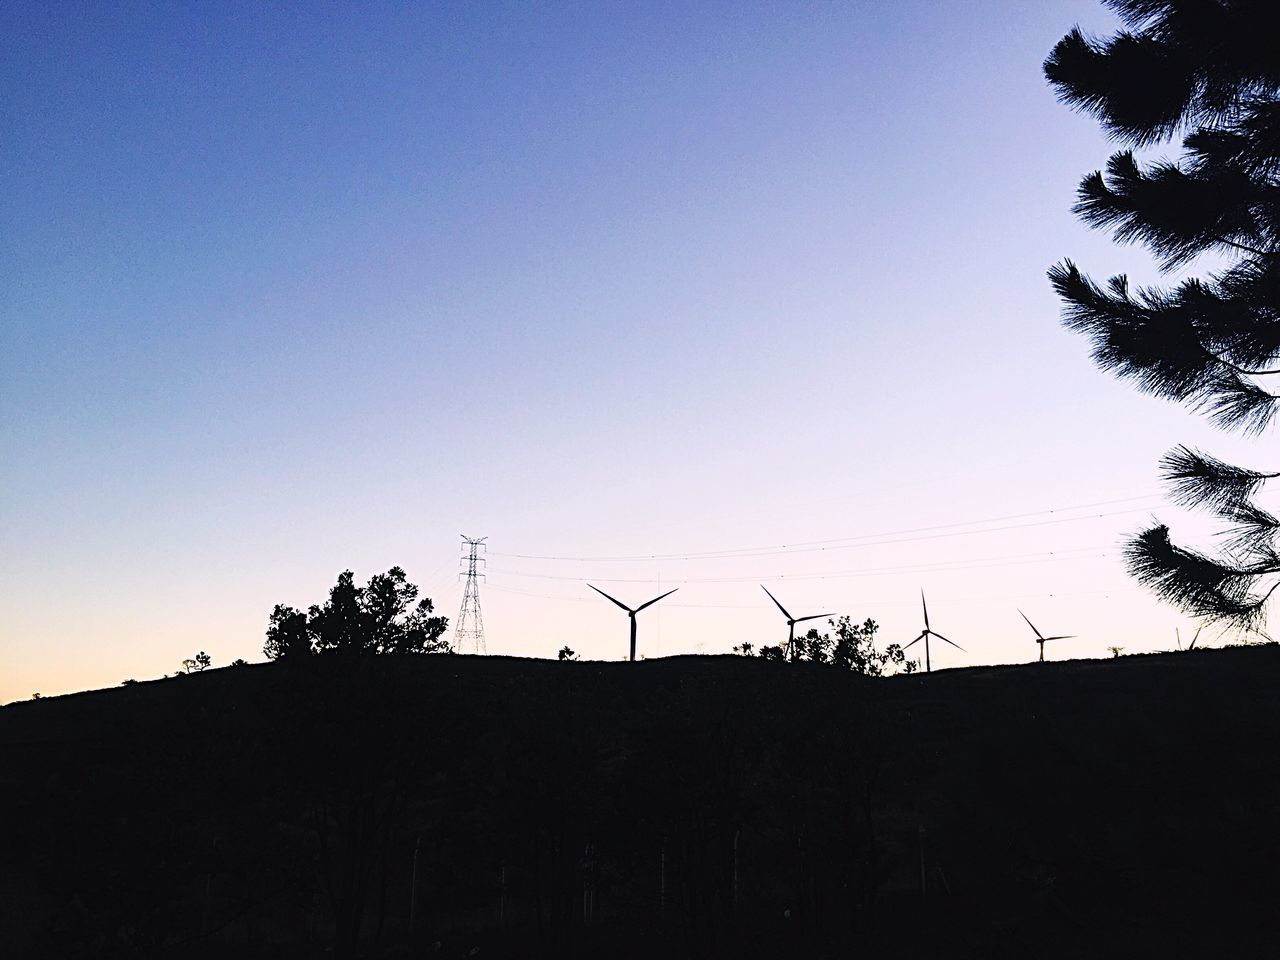 silhouette, copy space, low angle view, clear sky, no people, tree, fuel and power generation, sunset, nature, alternative energy, wind power, wind turbine, outdoors, day, windmill, technology, sky, industrial windmill, beauty in nature, palm tree